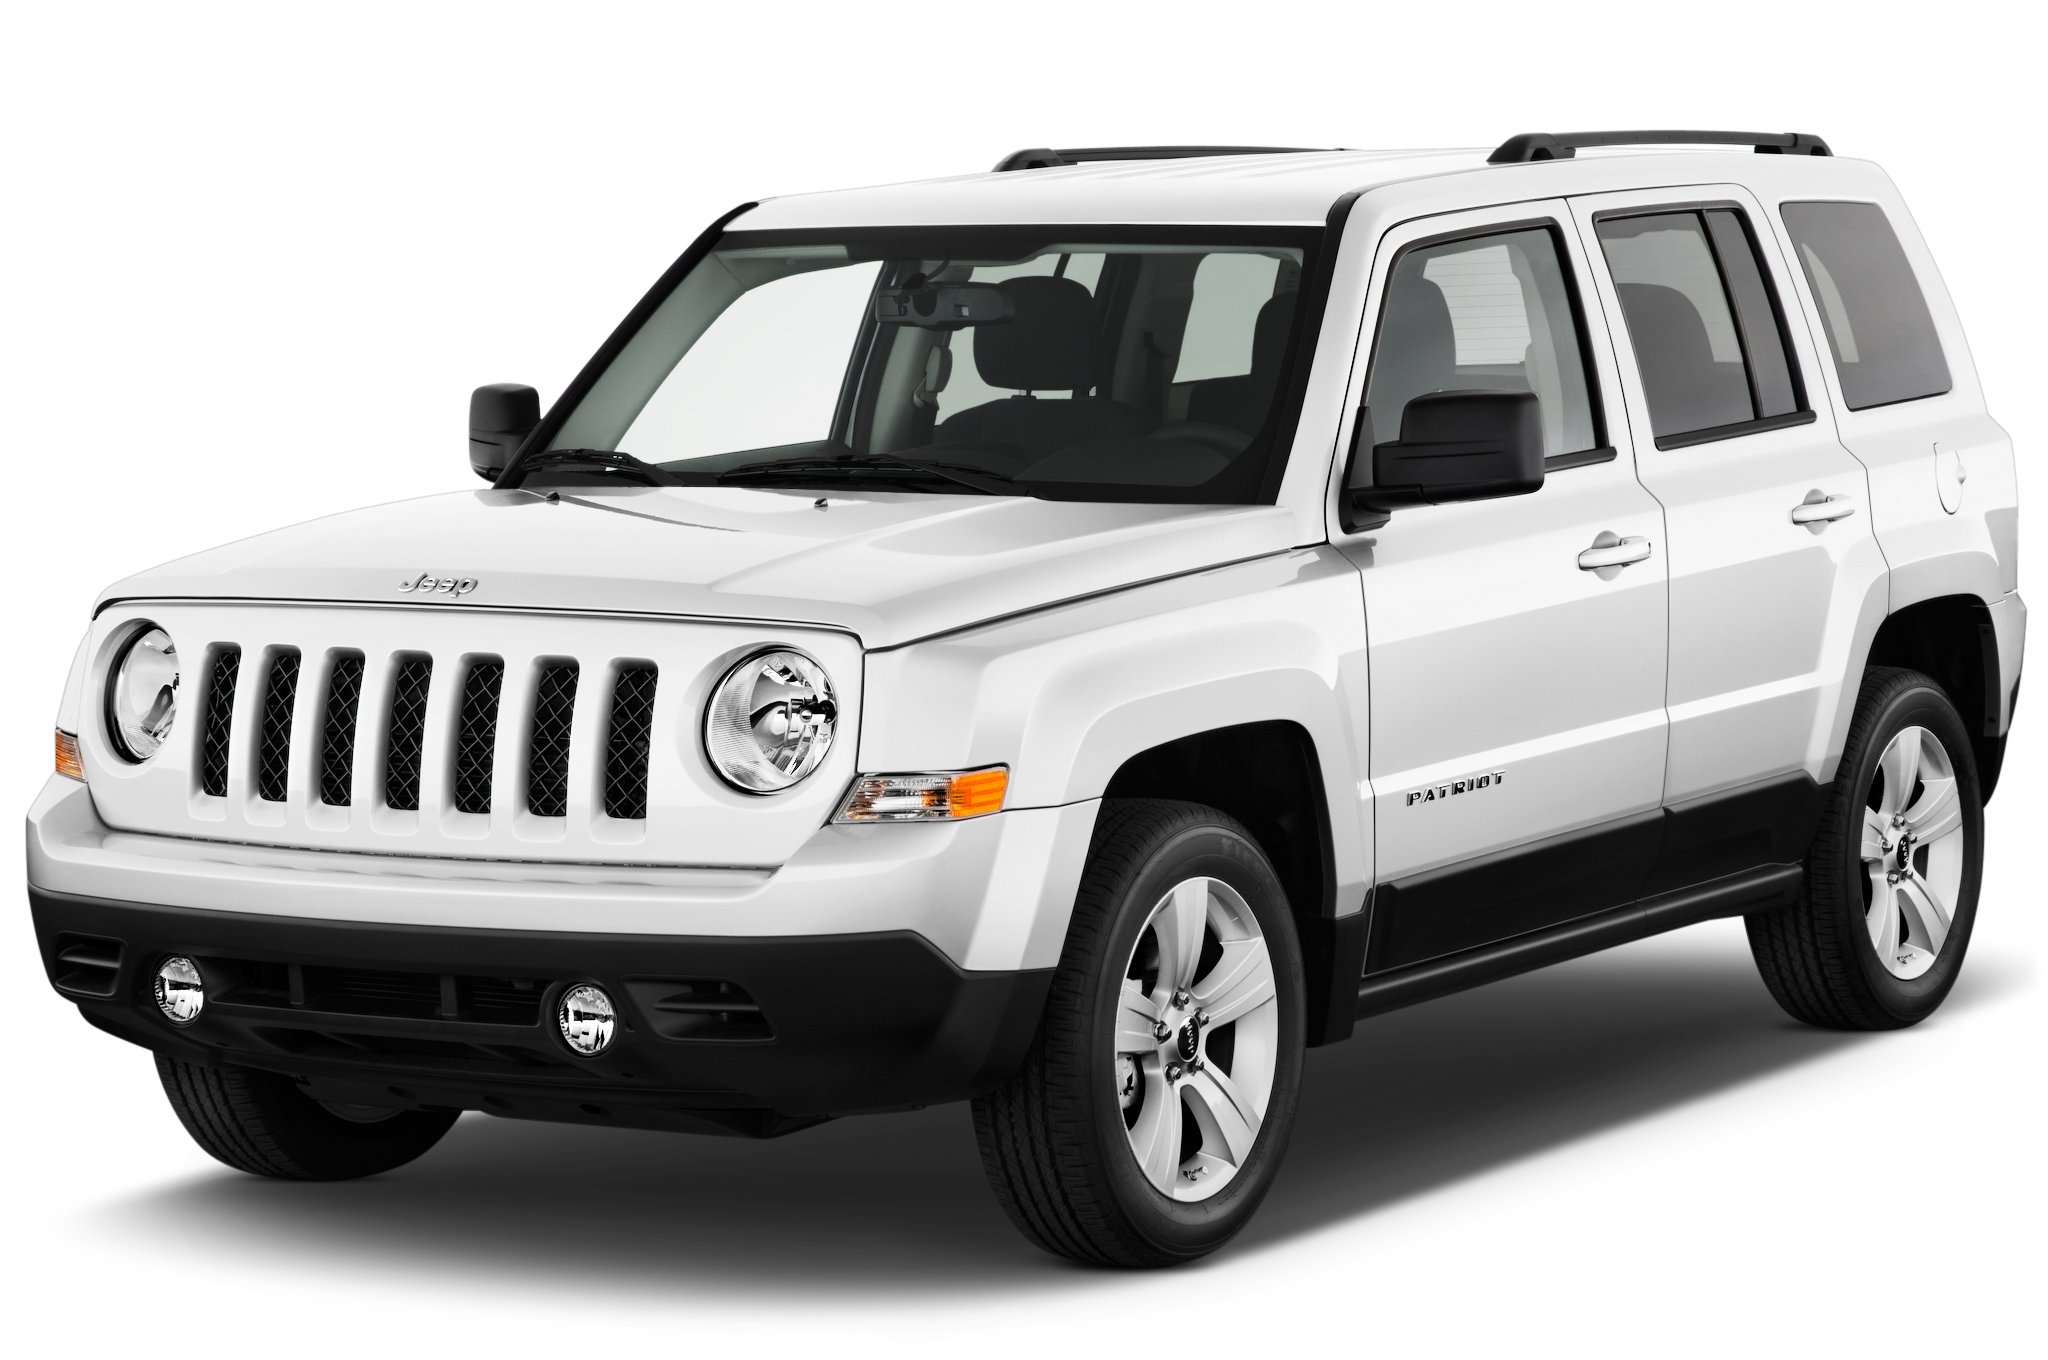 future cars you won 39 t want to miss jeep comanche automobile. Black Bedroom Furniture Sets. Home Design Ideas